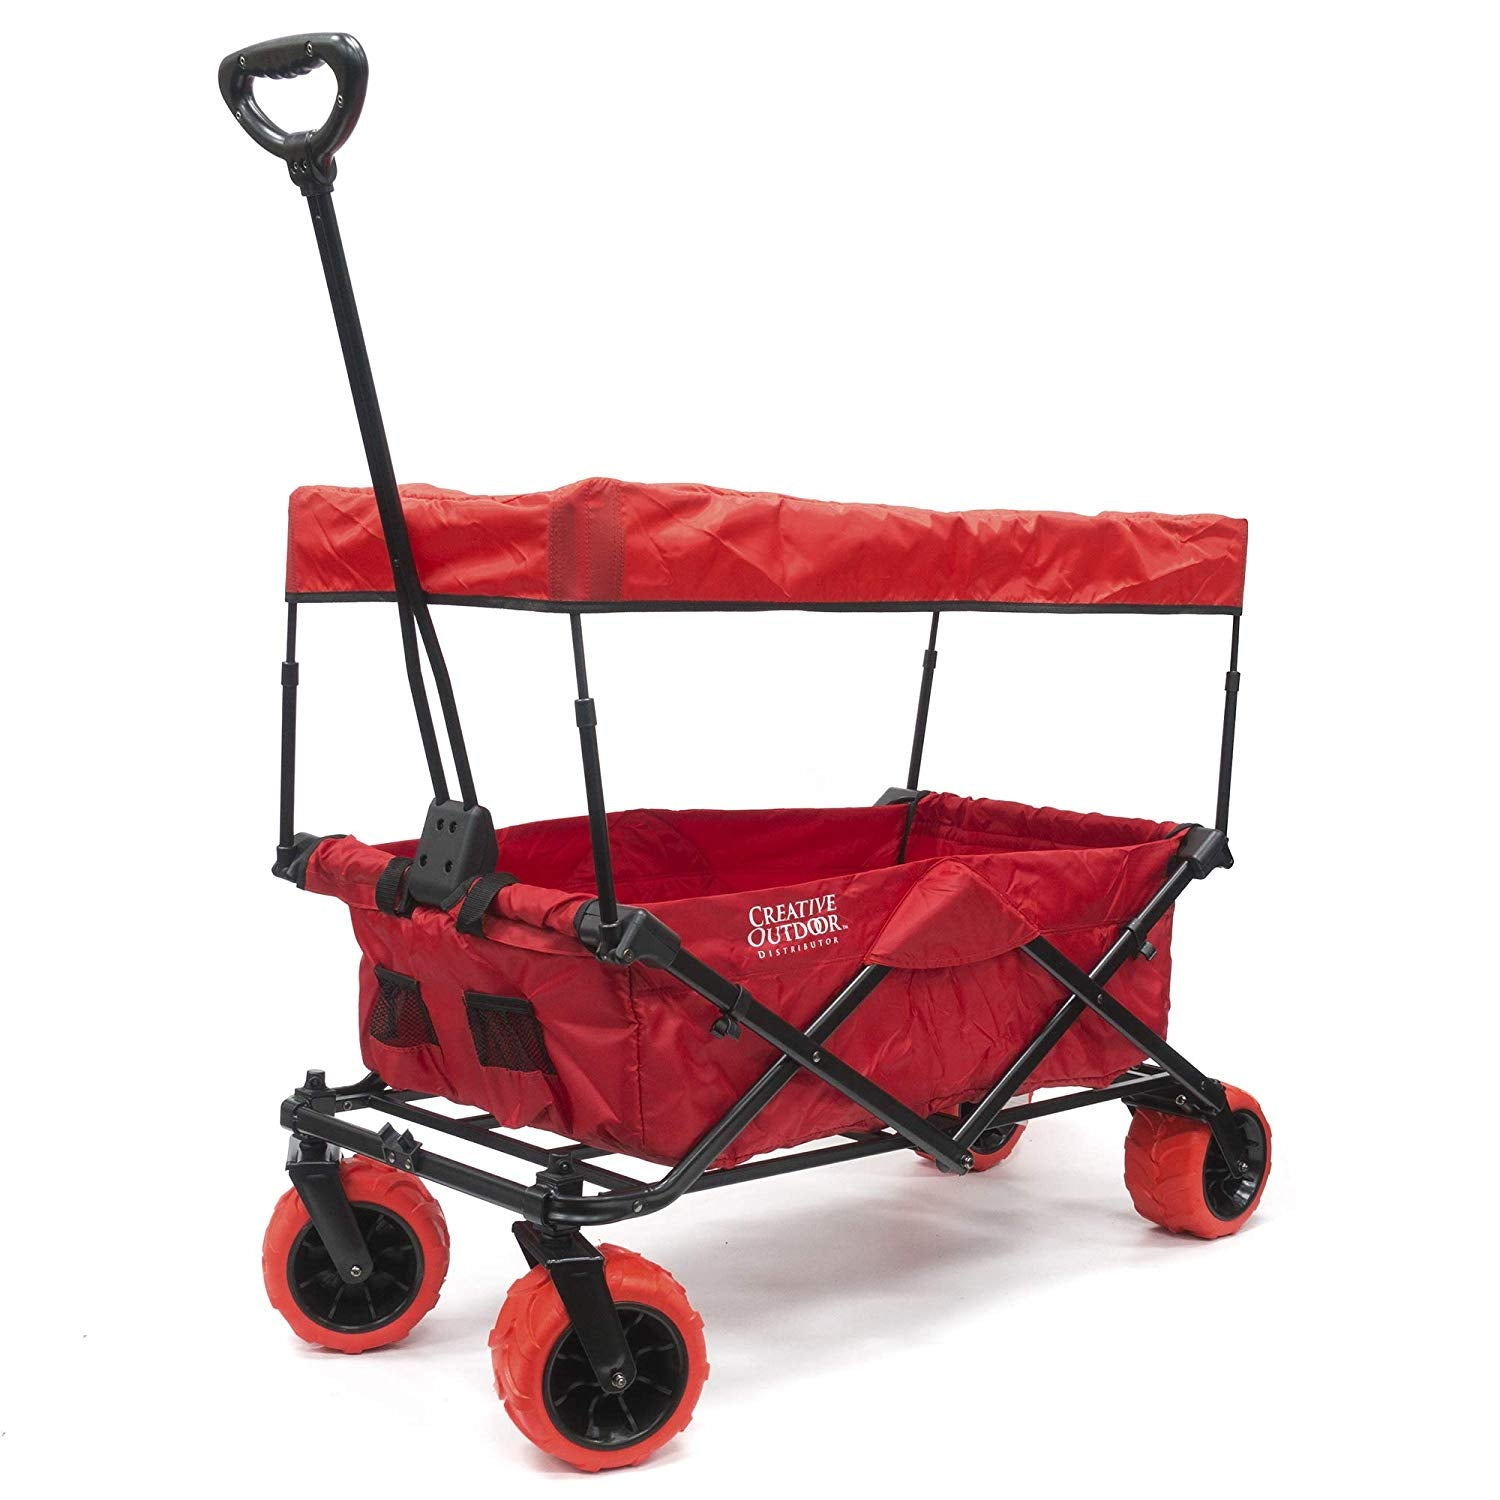 Creative Outdoor Distributor All-terrain Folding Wagon (red) - Cleve Wood d738e8a4cb44